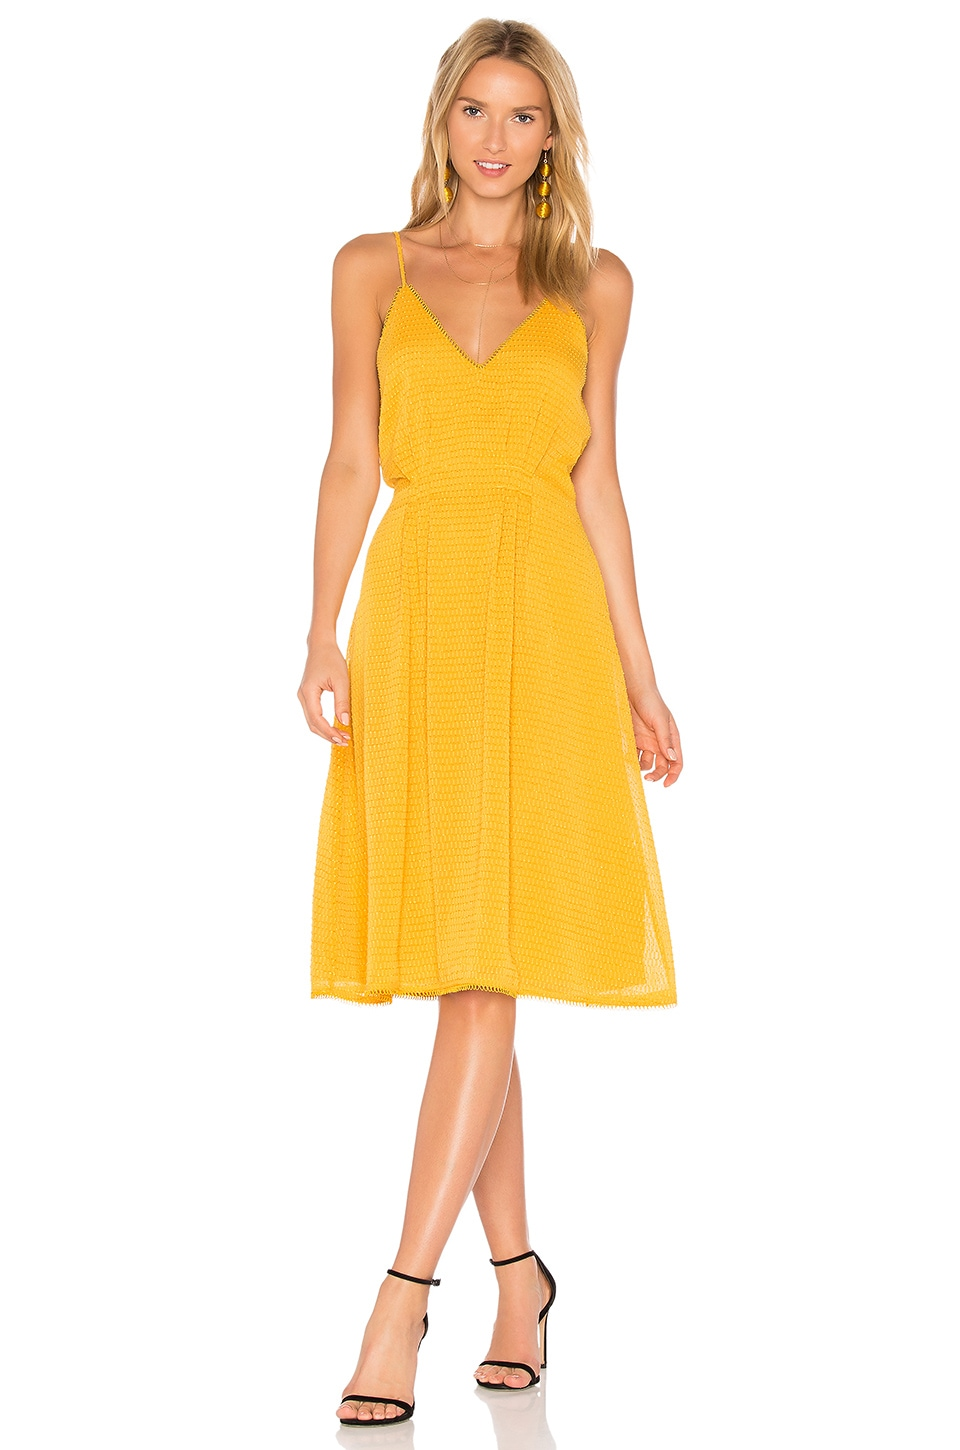 House of Harlow 1960 x REVOLVE Ines Dress in Mustard